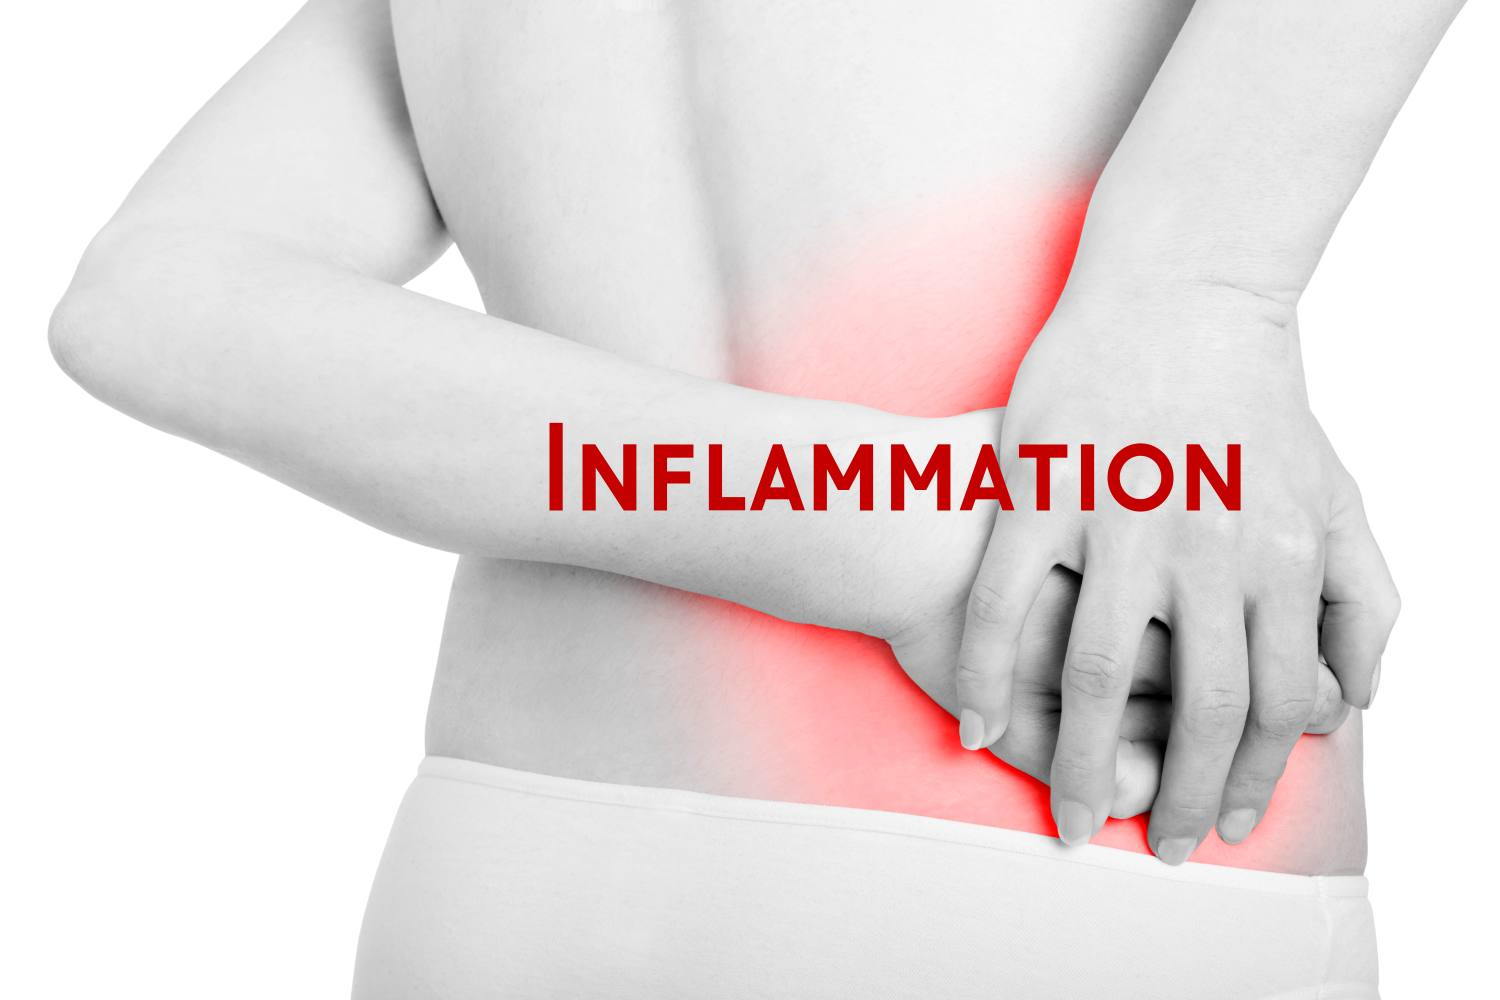 10 Home Remedies for Inflammation